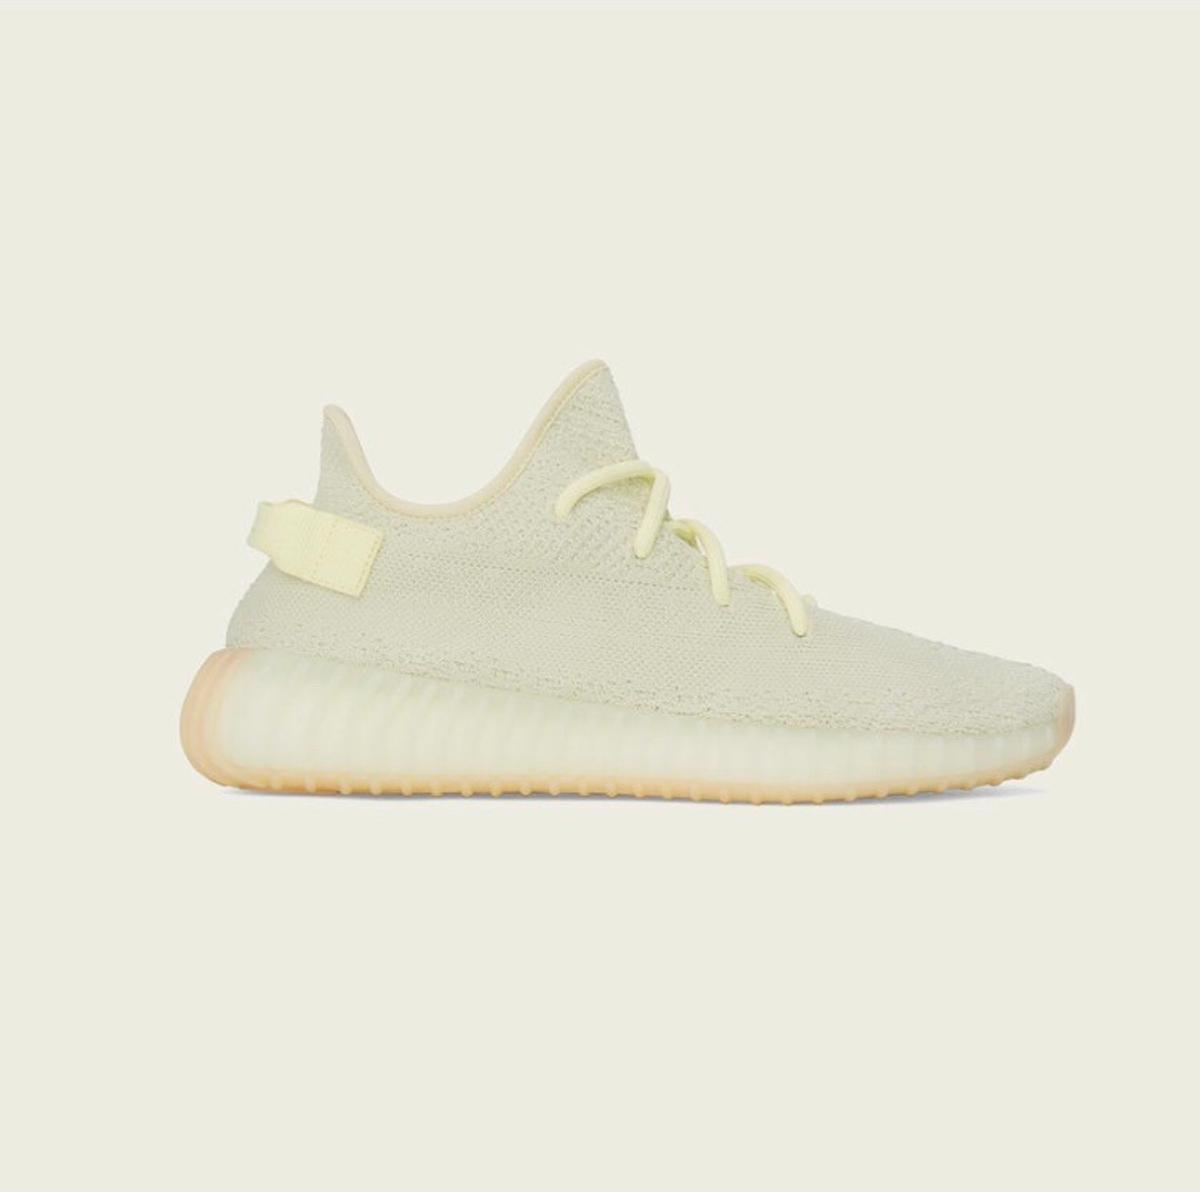 online store 65d24 fa157 YEEZY BOOST 350 V2 BUTTER SIZE UK 8.5